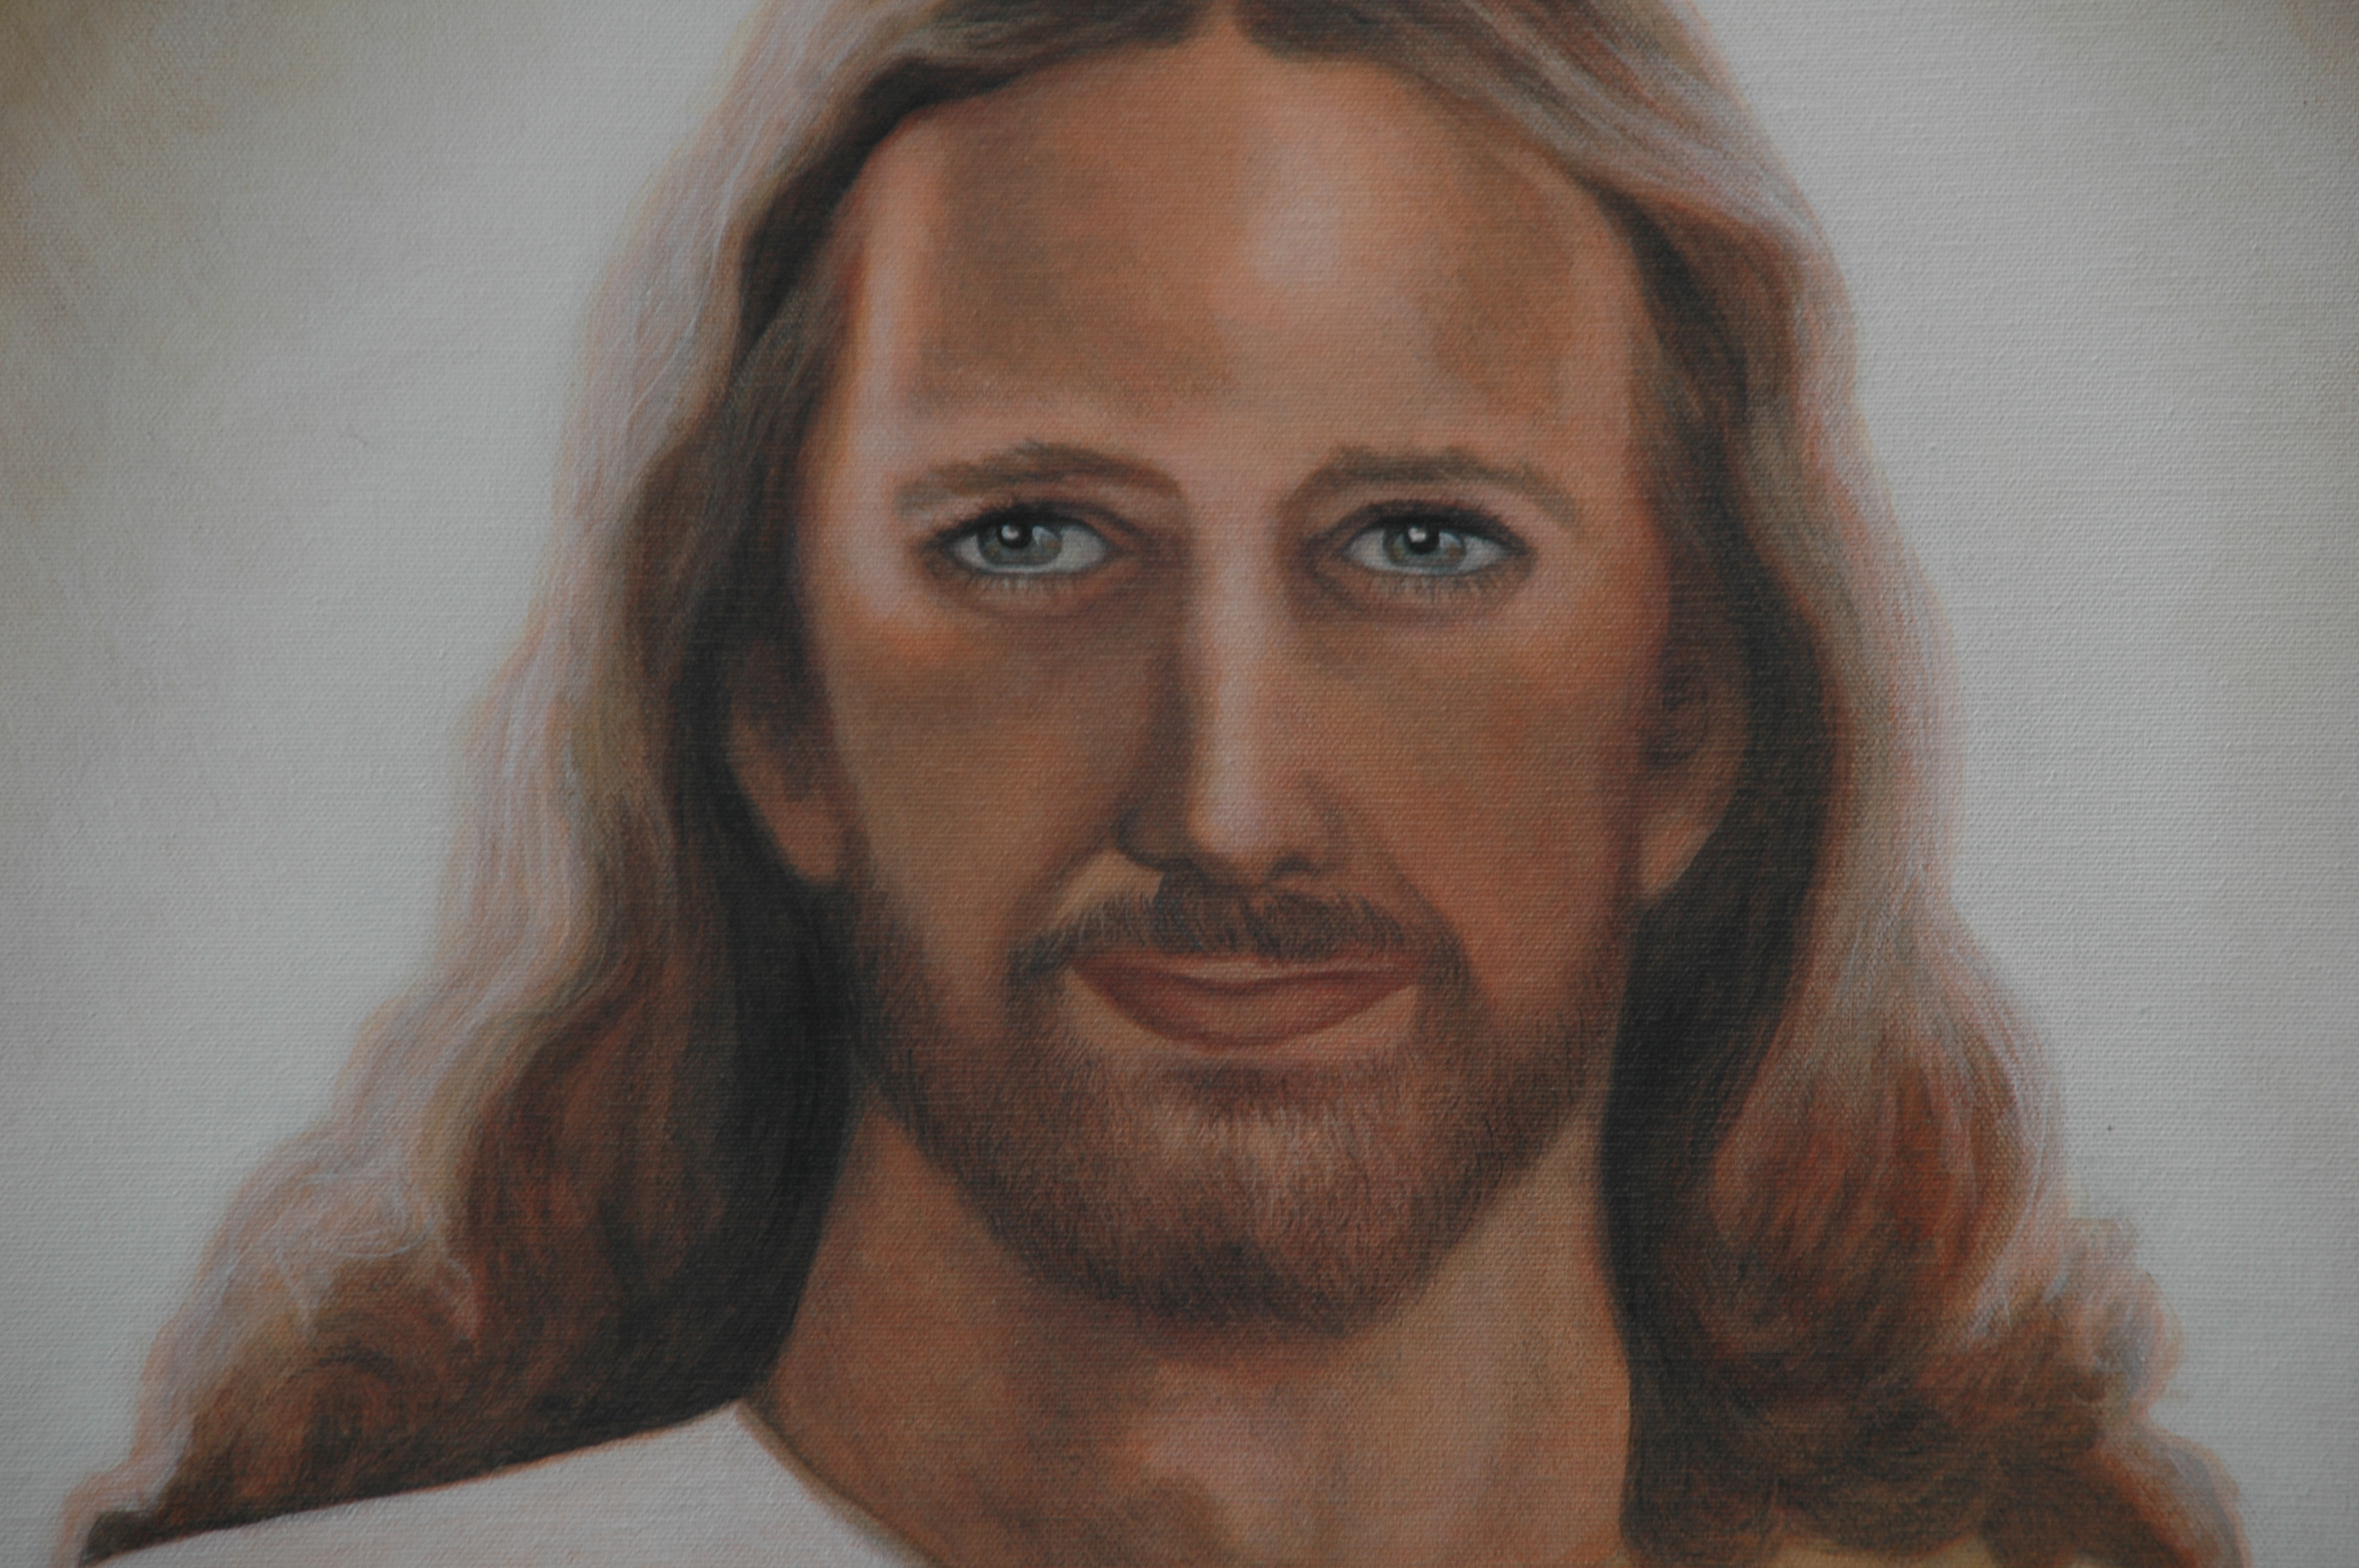 Detail for Christ 2